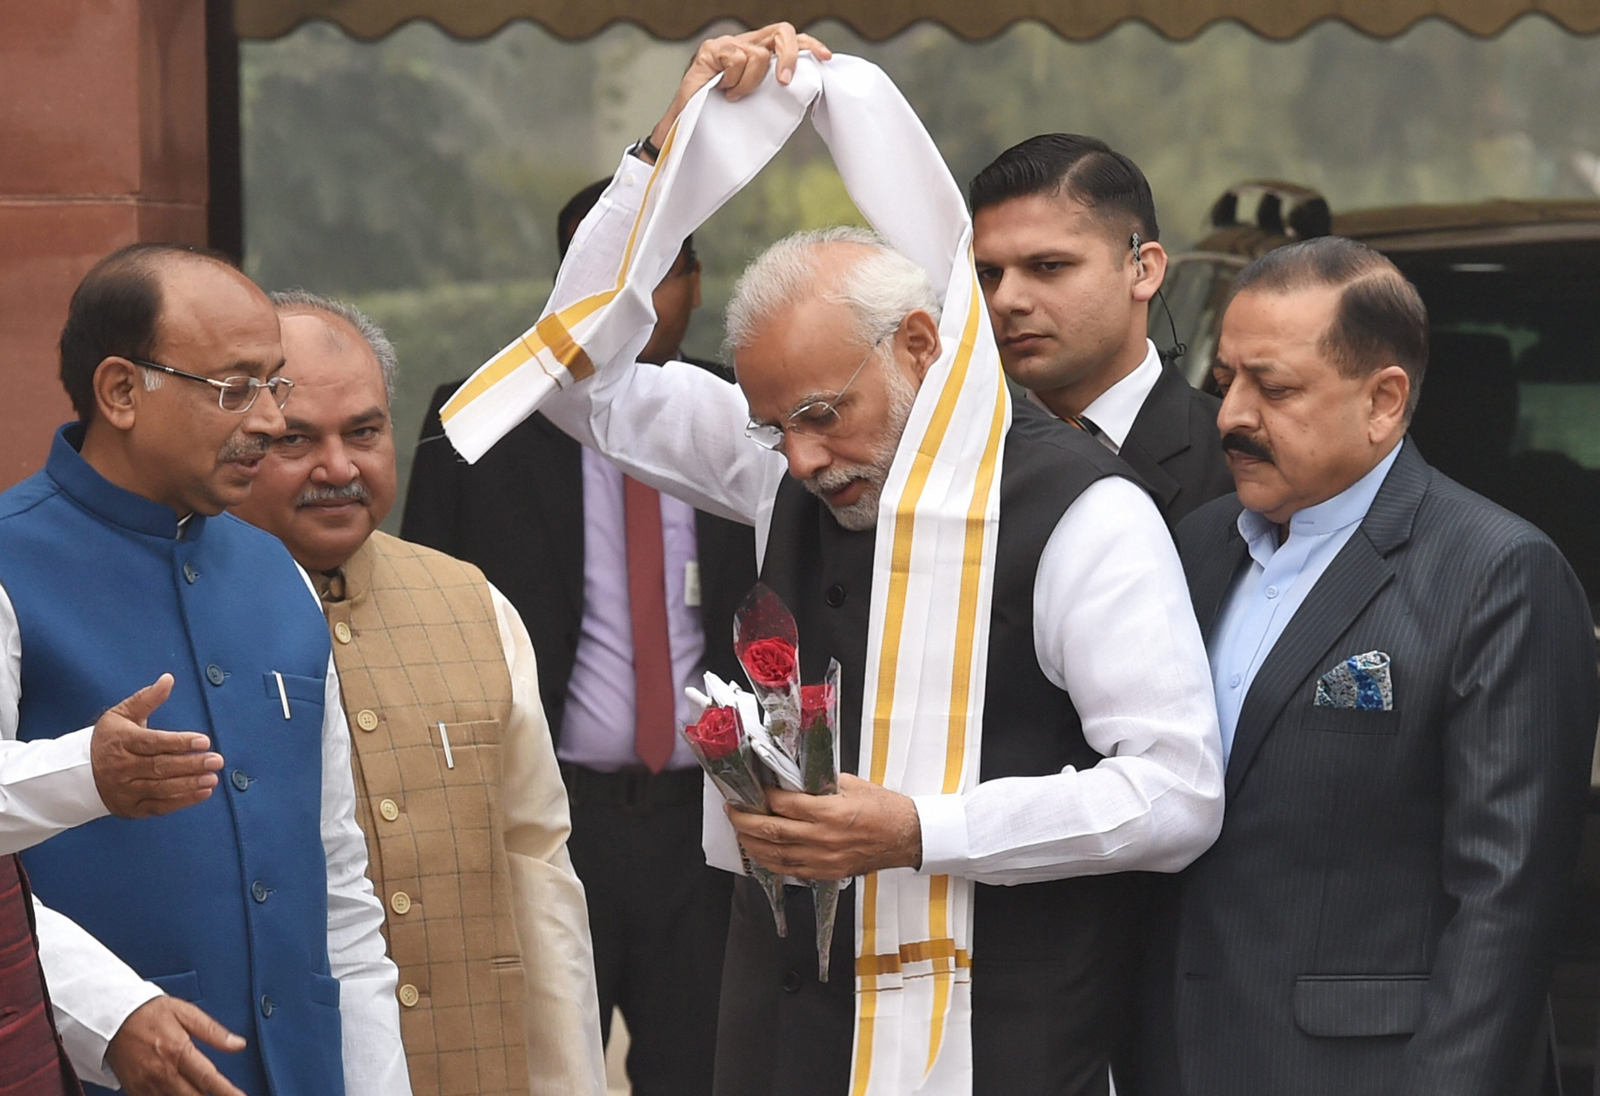 Prime Minister Narendra Modi removes a stole given to him by a minister upon his arrival at the Parliament on the first day of the winter session in New Delhi, December 11, 2018